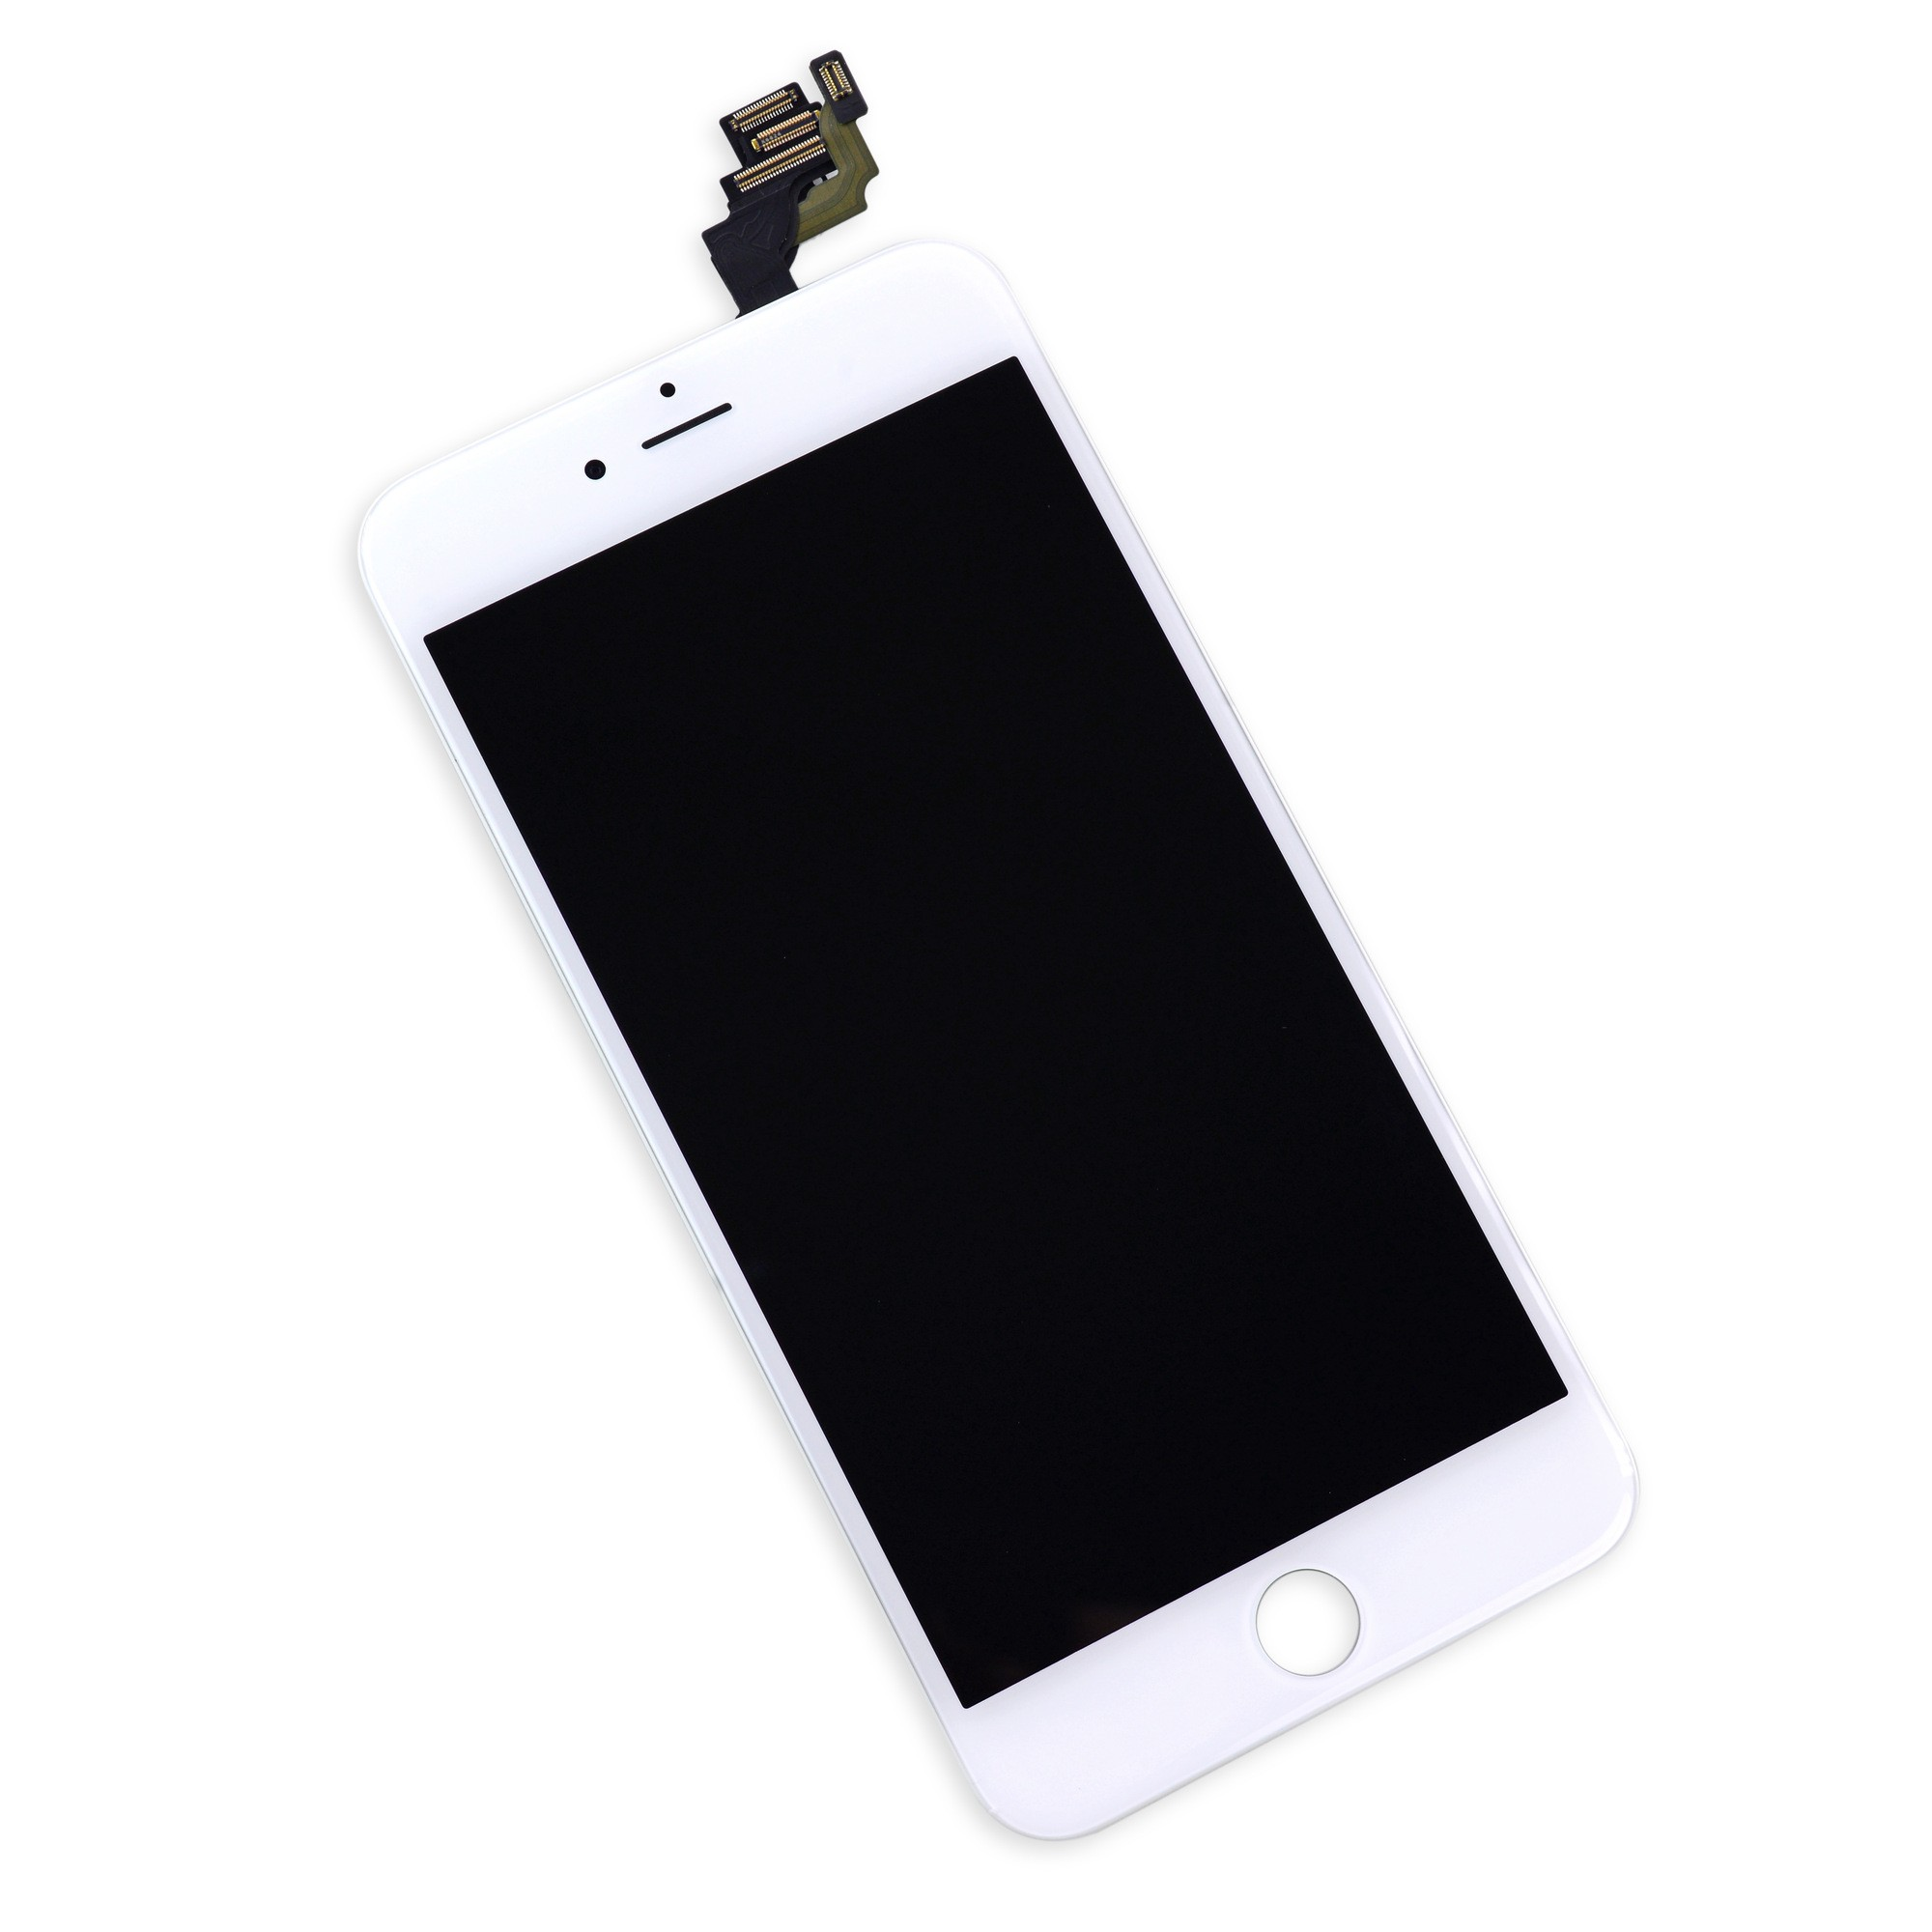 iFixit iPhone 6 Plus LCD Screen and Digitizer Full Assembly - White - Full Repair Kit Including Tools, IF269-000-12